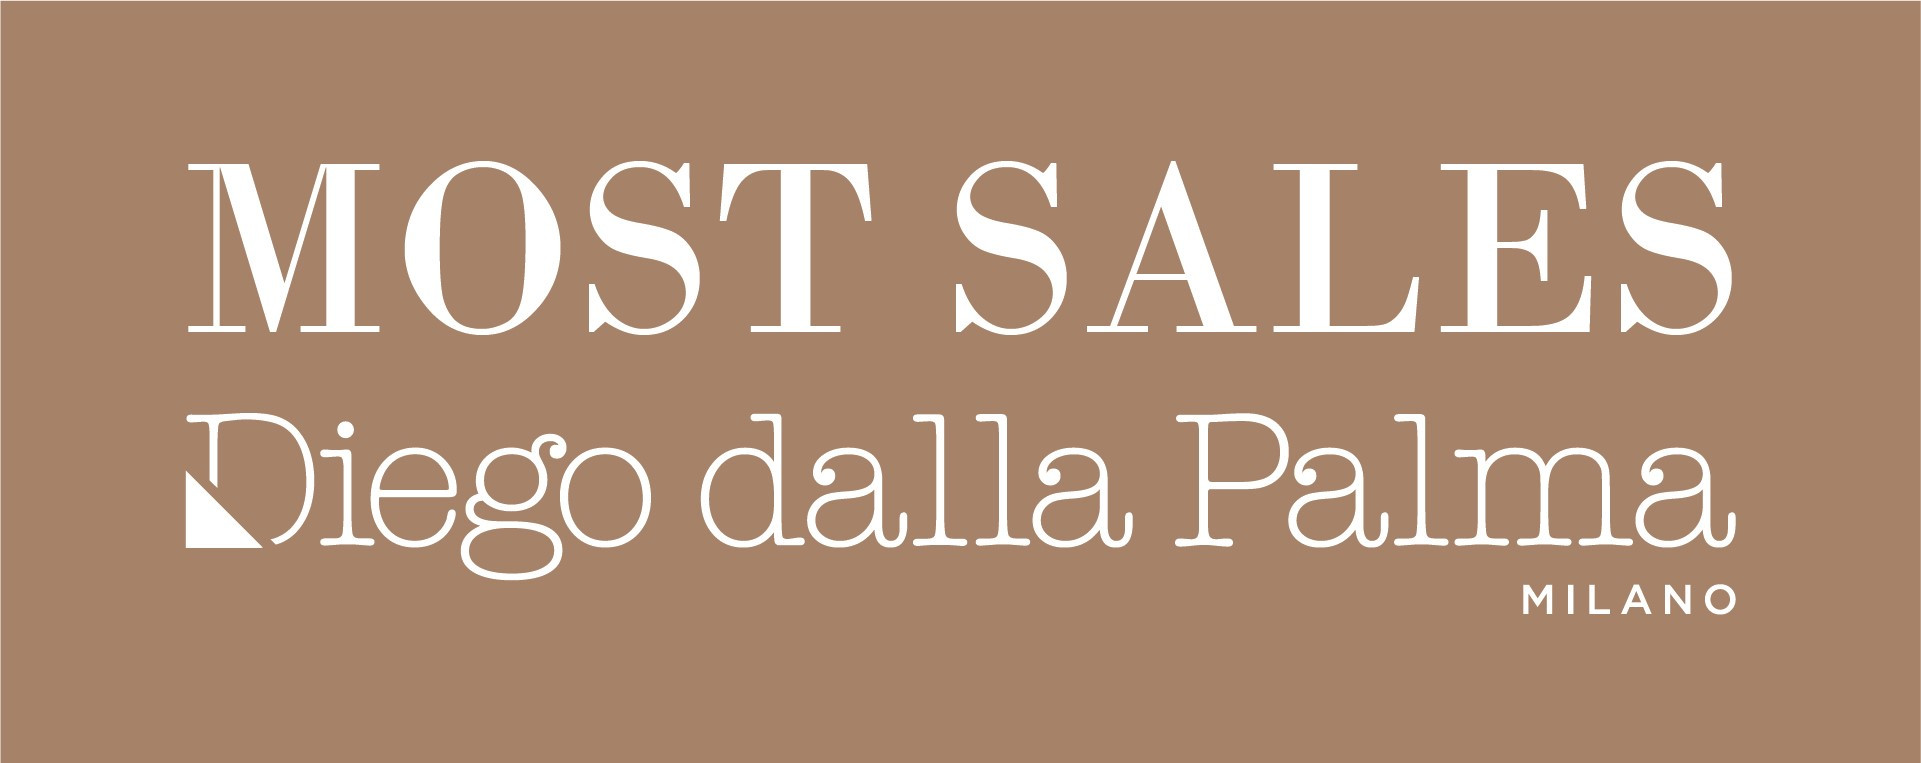 DDP MOST SALES TITOLO-17.jpg